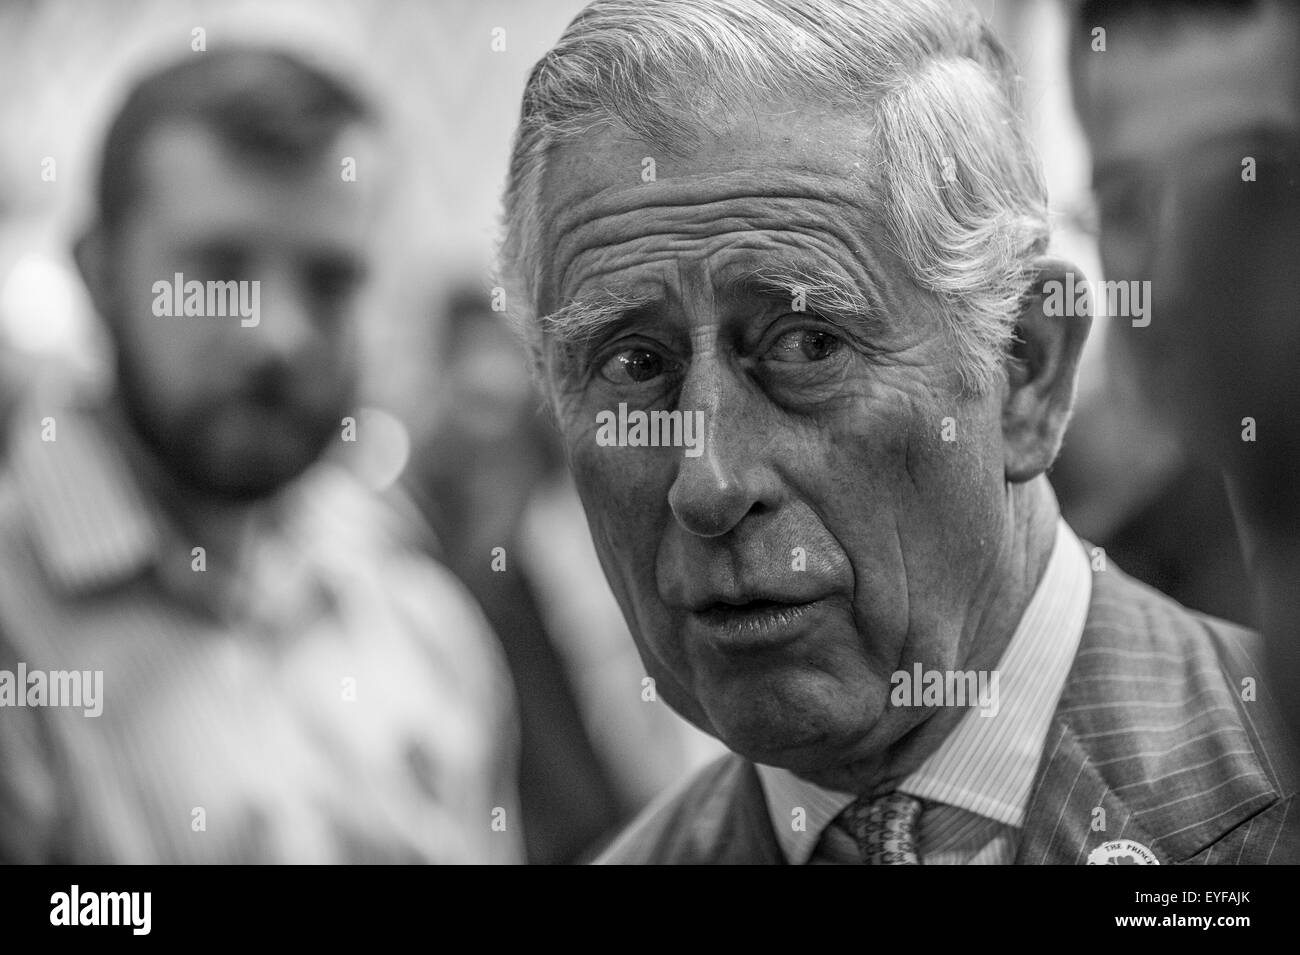 His Royal Highness The Prince of Wales visits Gloucester Services on the southbound M5 Motorway in Gloucestershire. - Stock Image